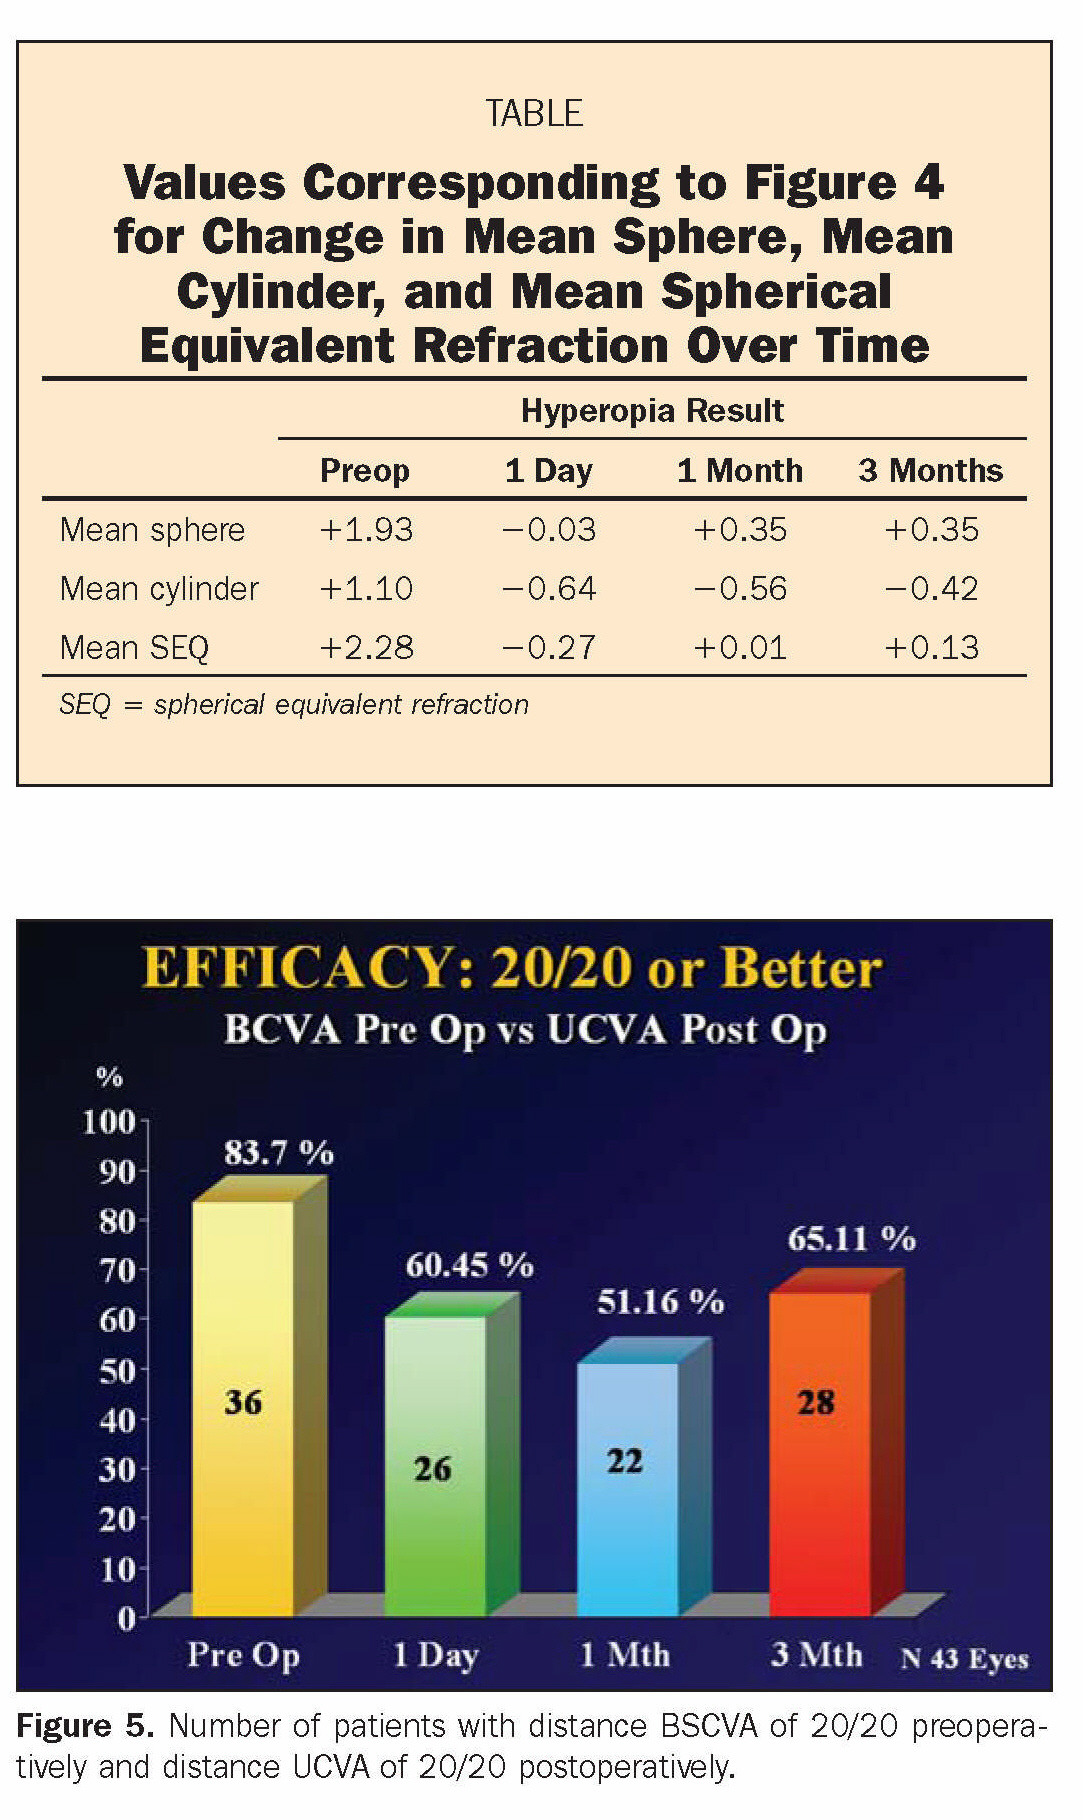 TABLEValues Corresponding to Figure 4 for Change in Mean Sphere, Mean Cylinder, and Mean Spherical Equivalent Refraction Over TimeFigure 5. Number of patients with distance BSCVA of 20/20 preoperatively and distance UCVA of 20/20 postoperatively.